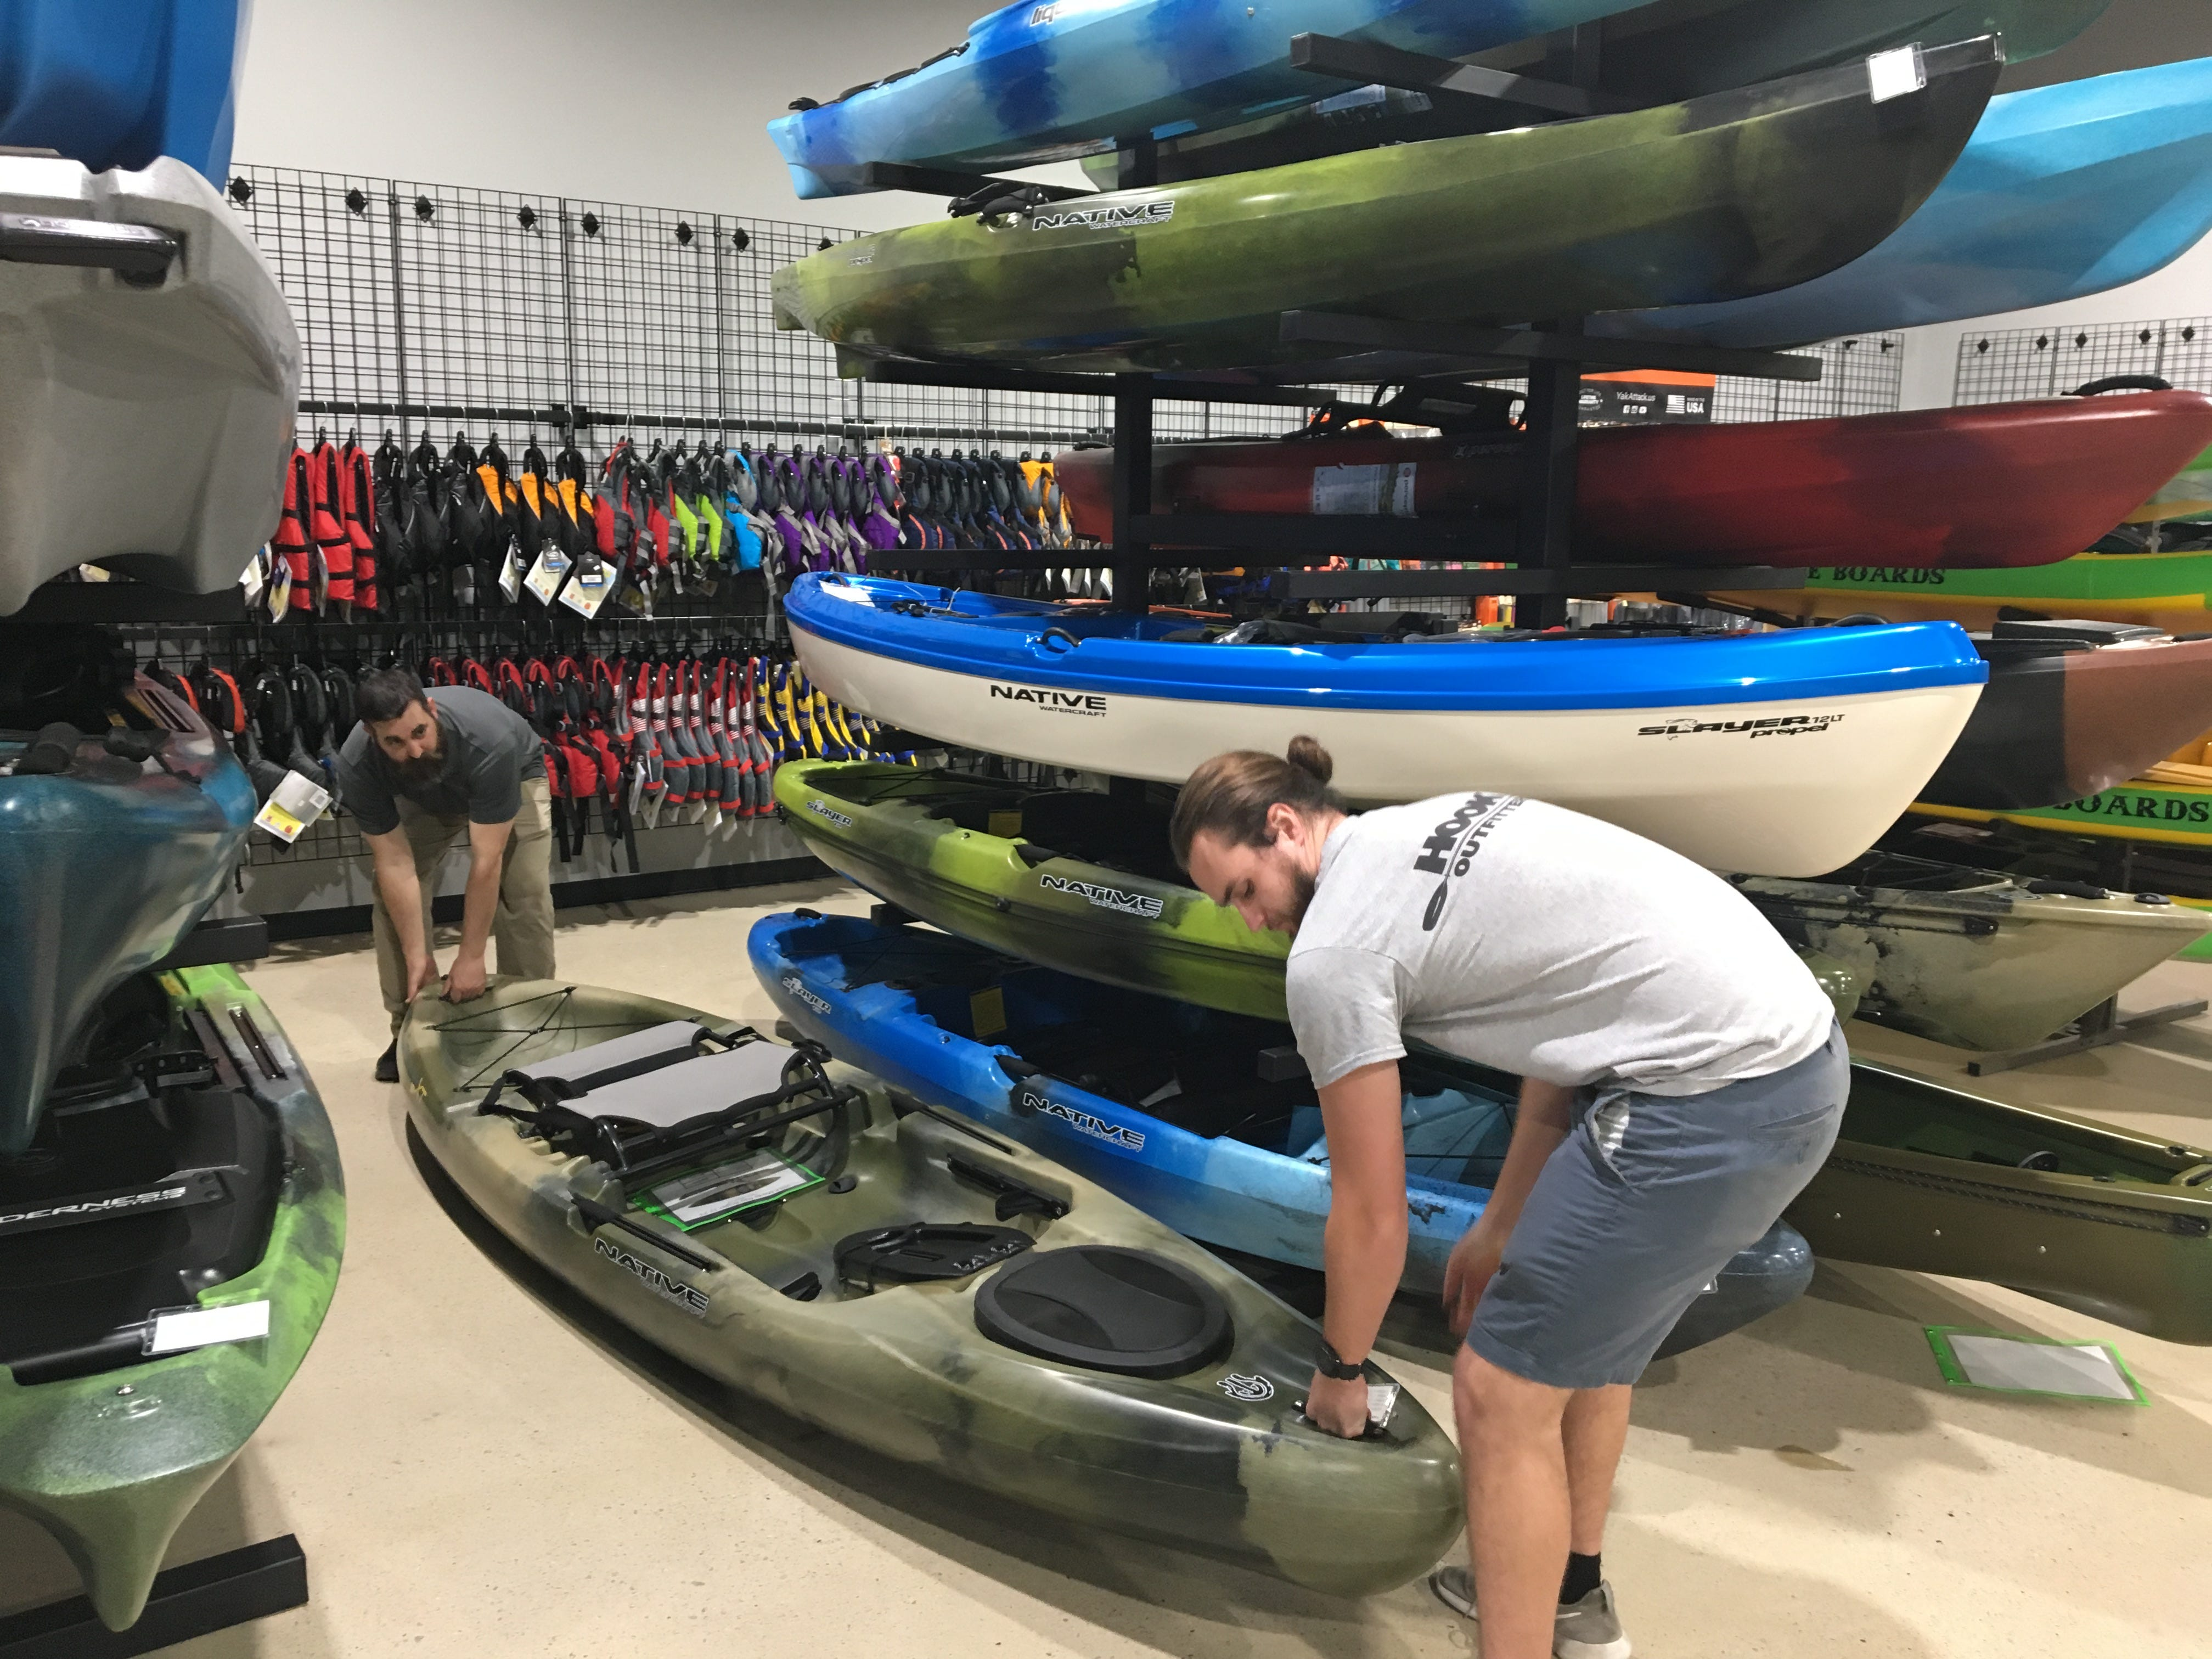 Chris Conder, manager of Murfreesboro's Hook 1 outfitters, and Tanner Morris, a whitewater enthusiast, lift one of the kayaks at the newly opened store.